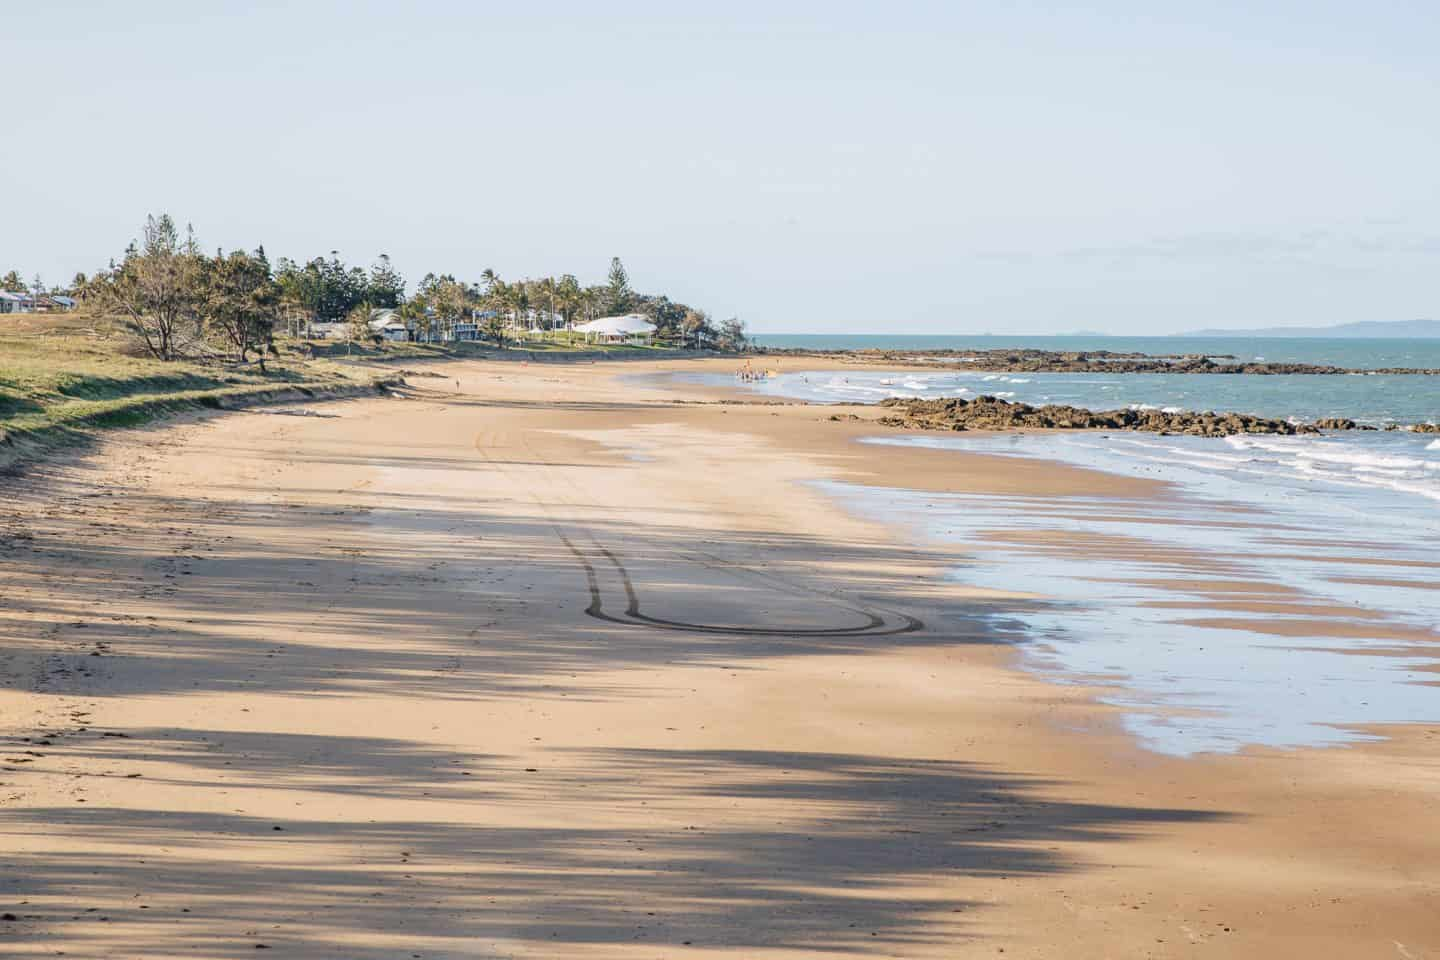 yeppoon beaches, beaches yeppoon, best beaches in yeppoon, beaches in yeppoon